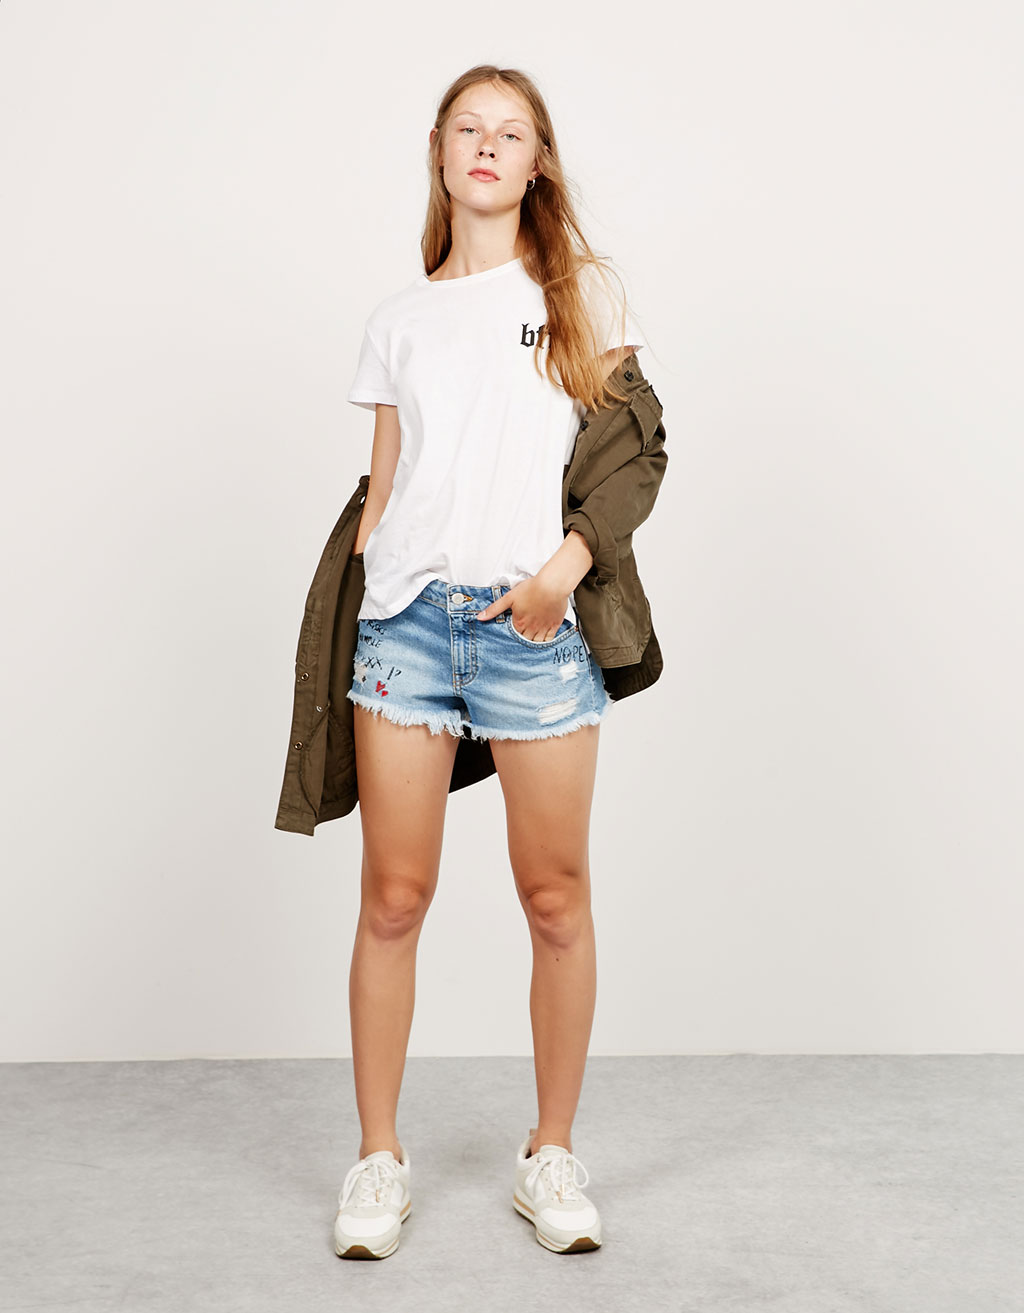 BSK embroidered denim shorts with text